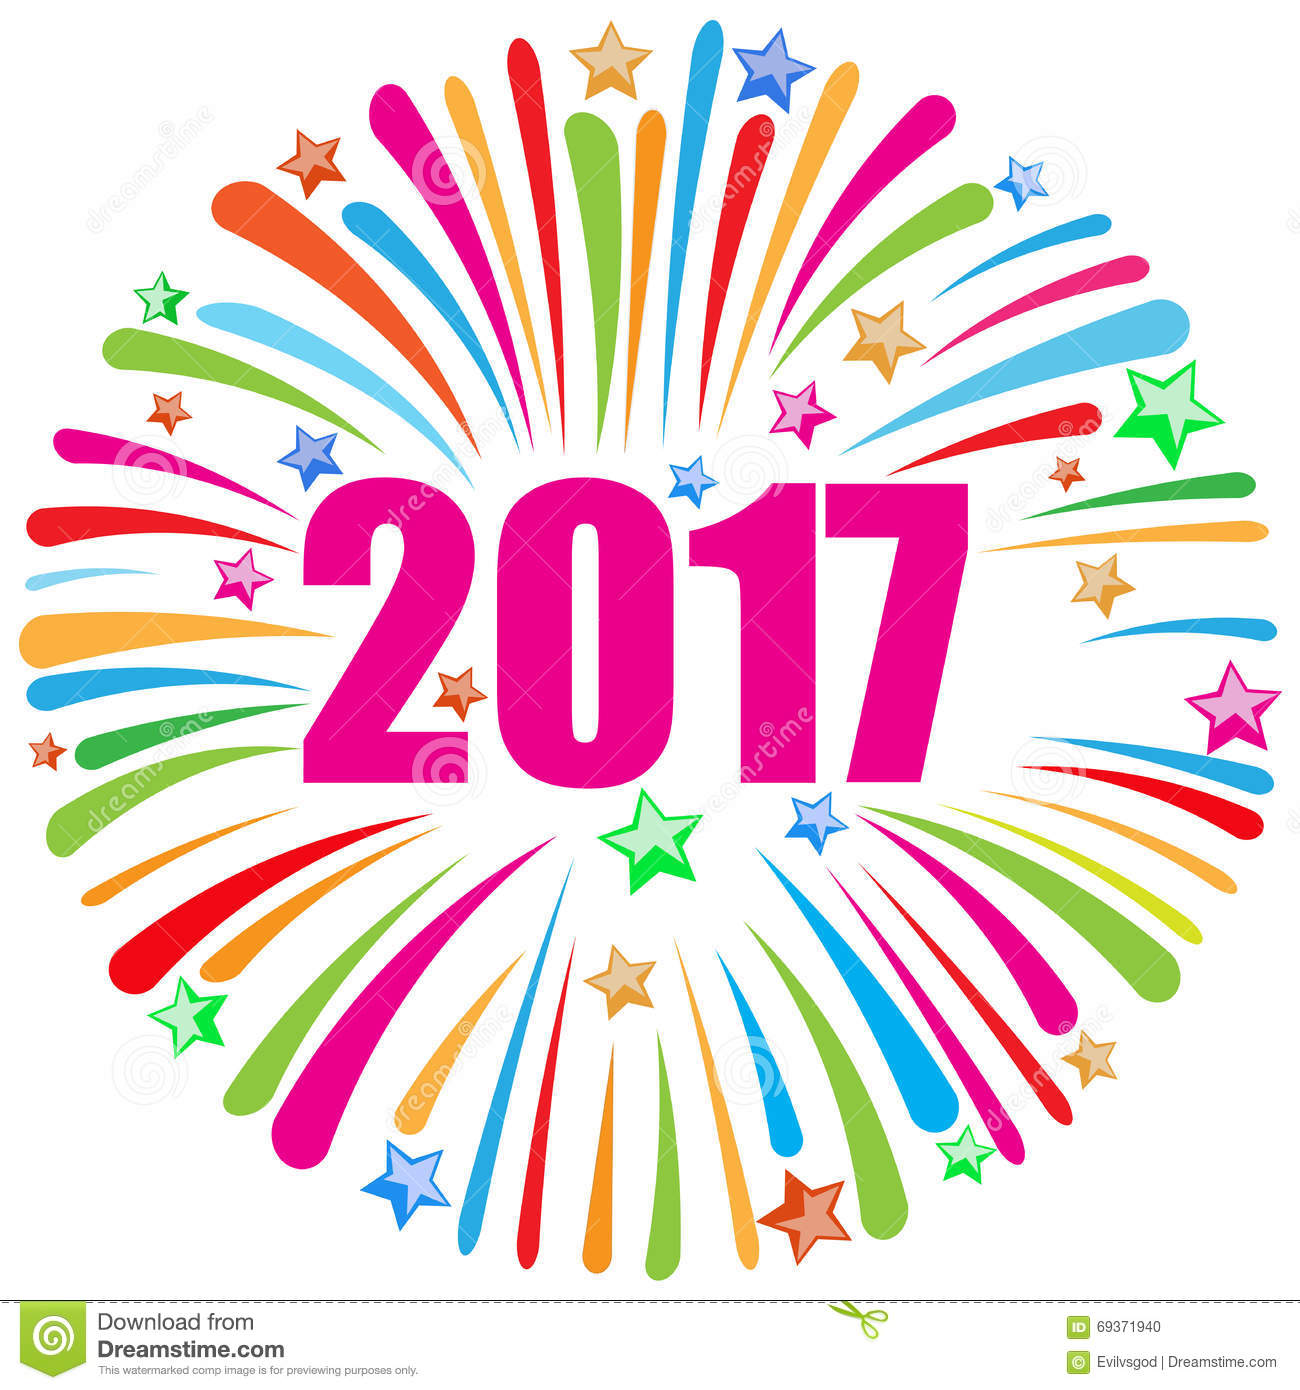 Happy new year 2017 clipart 3 » Clipart Station.